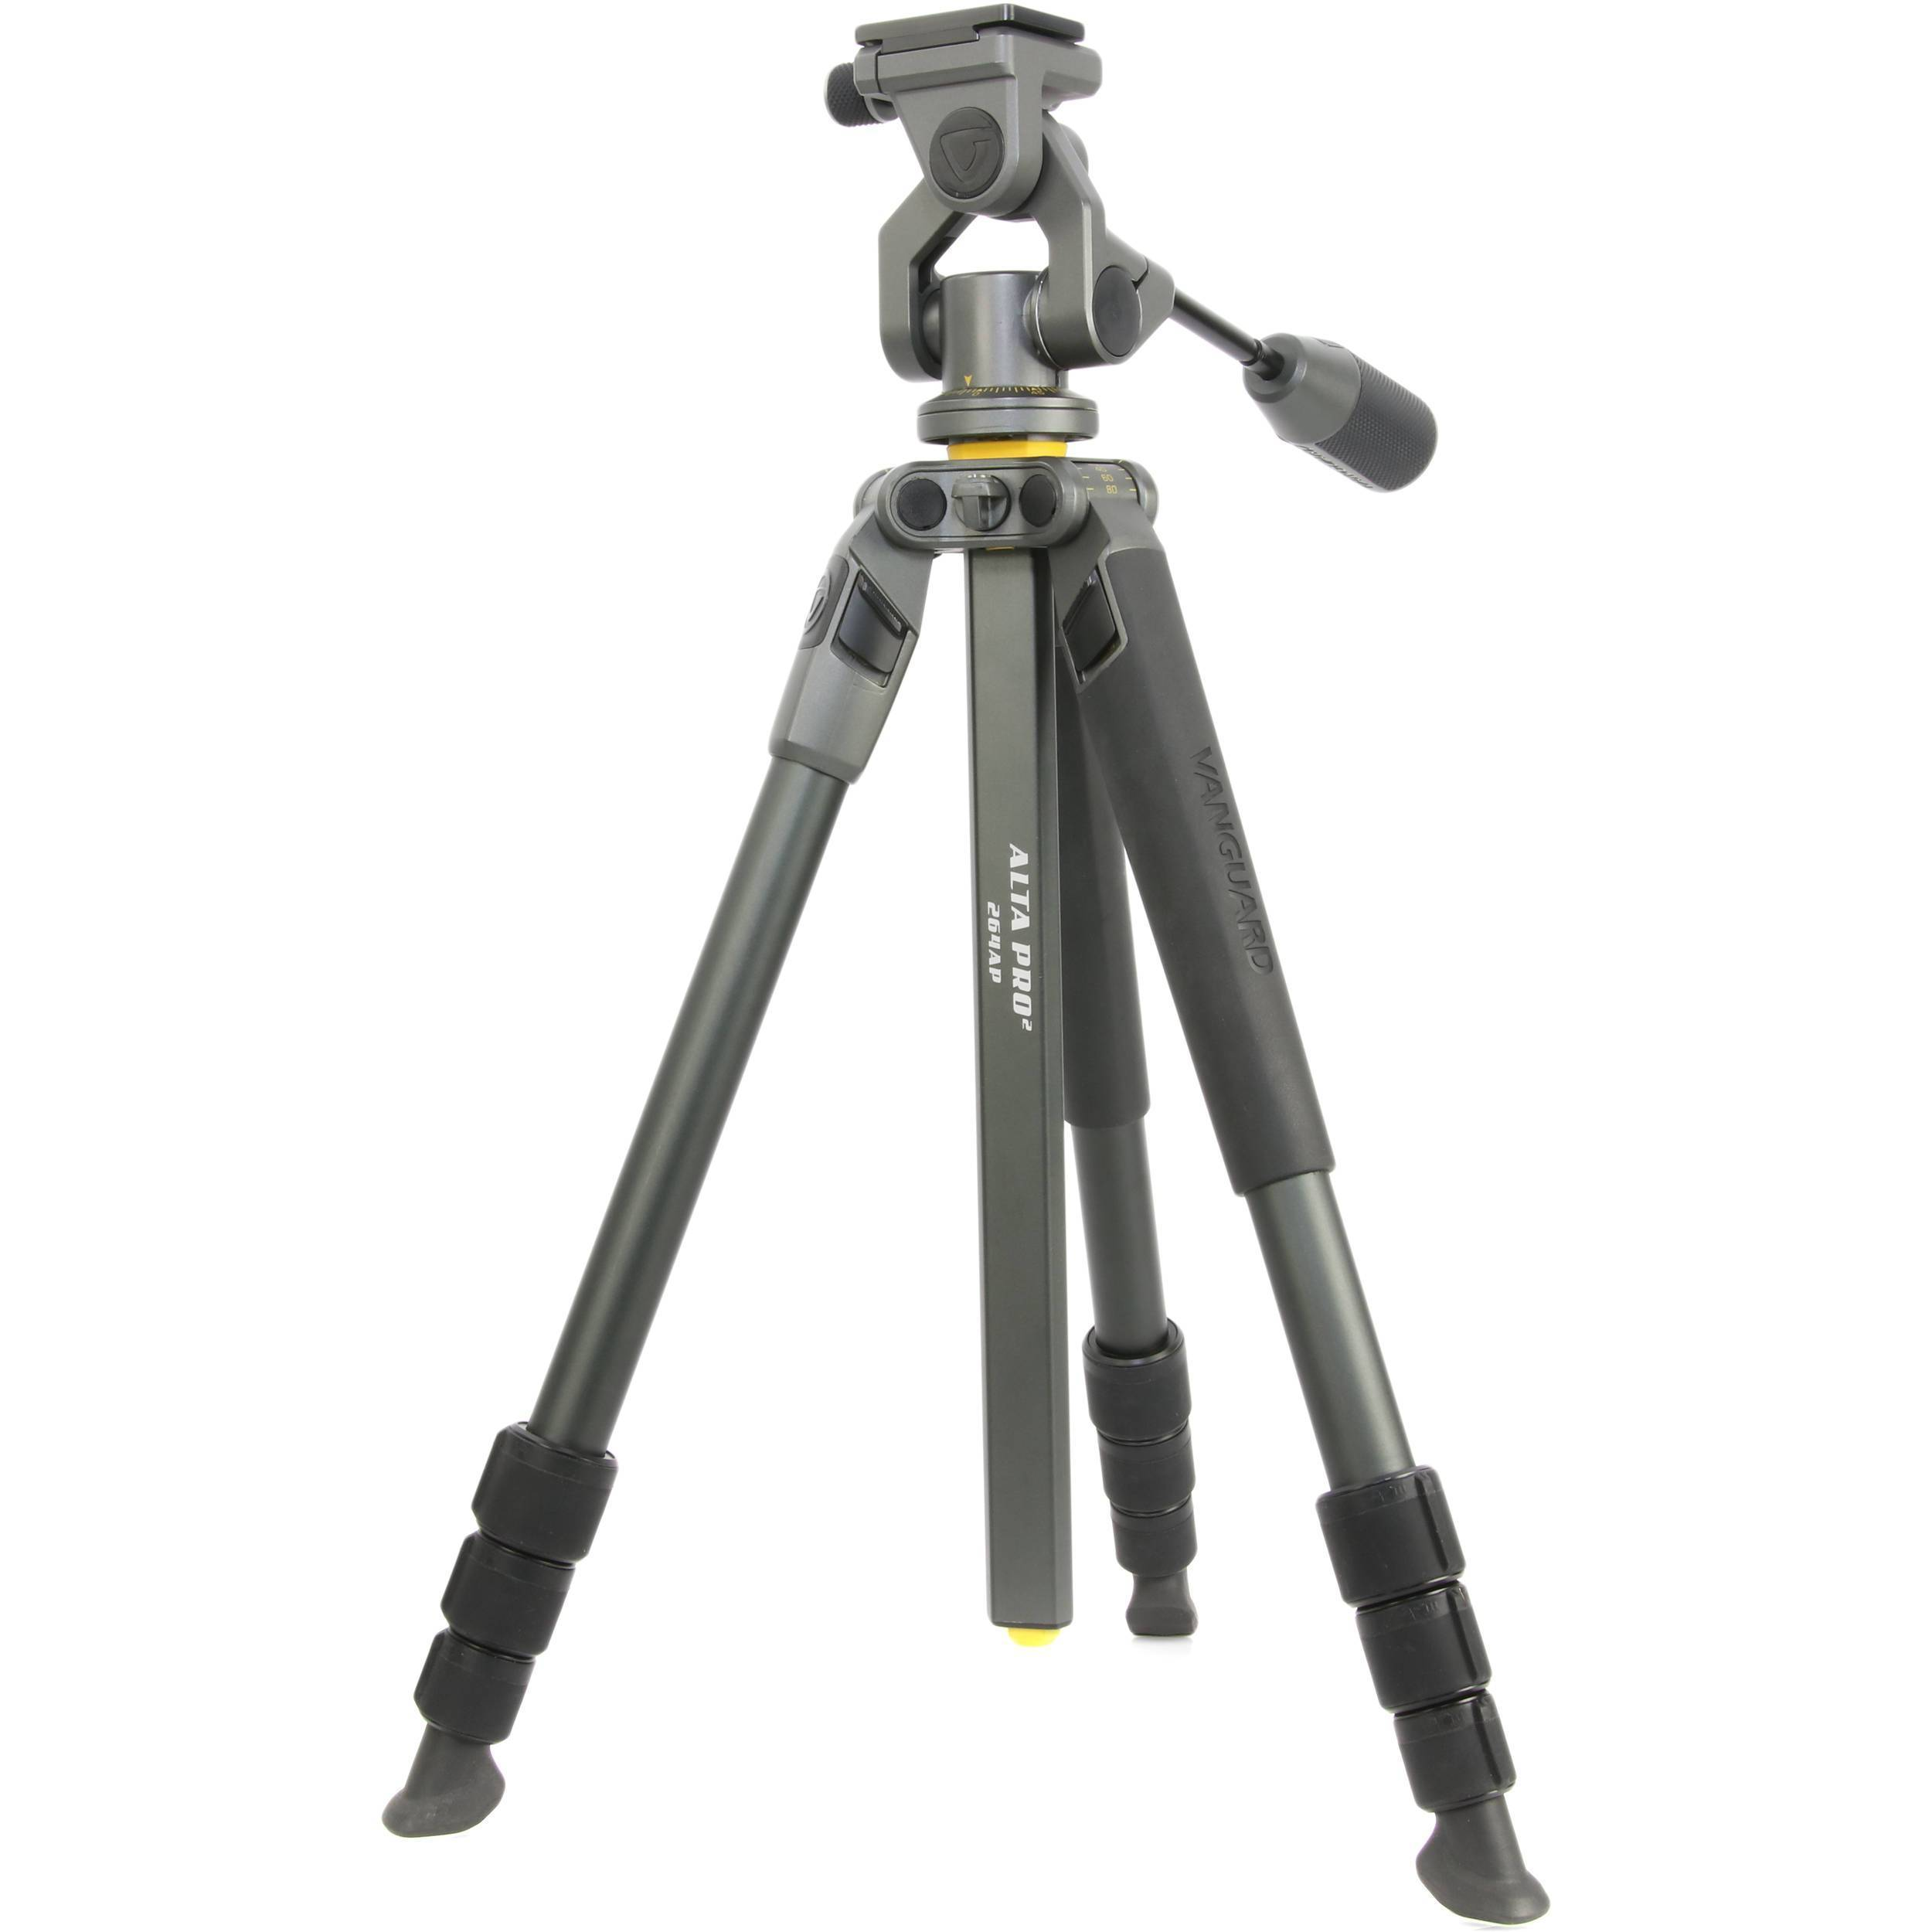 For the ultimate in tripod innovation check out the Vanguard range! These things are boss!